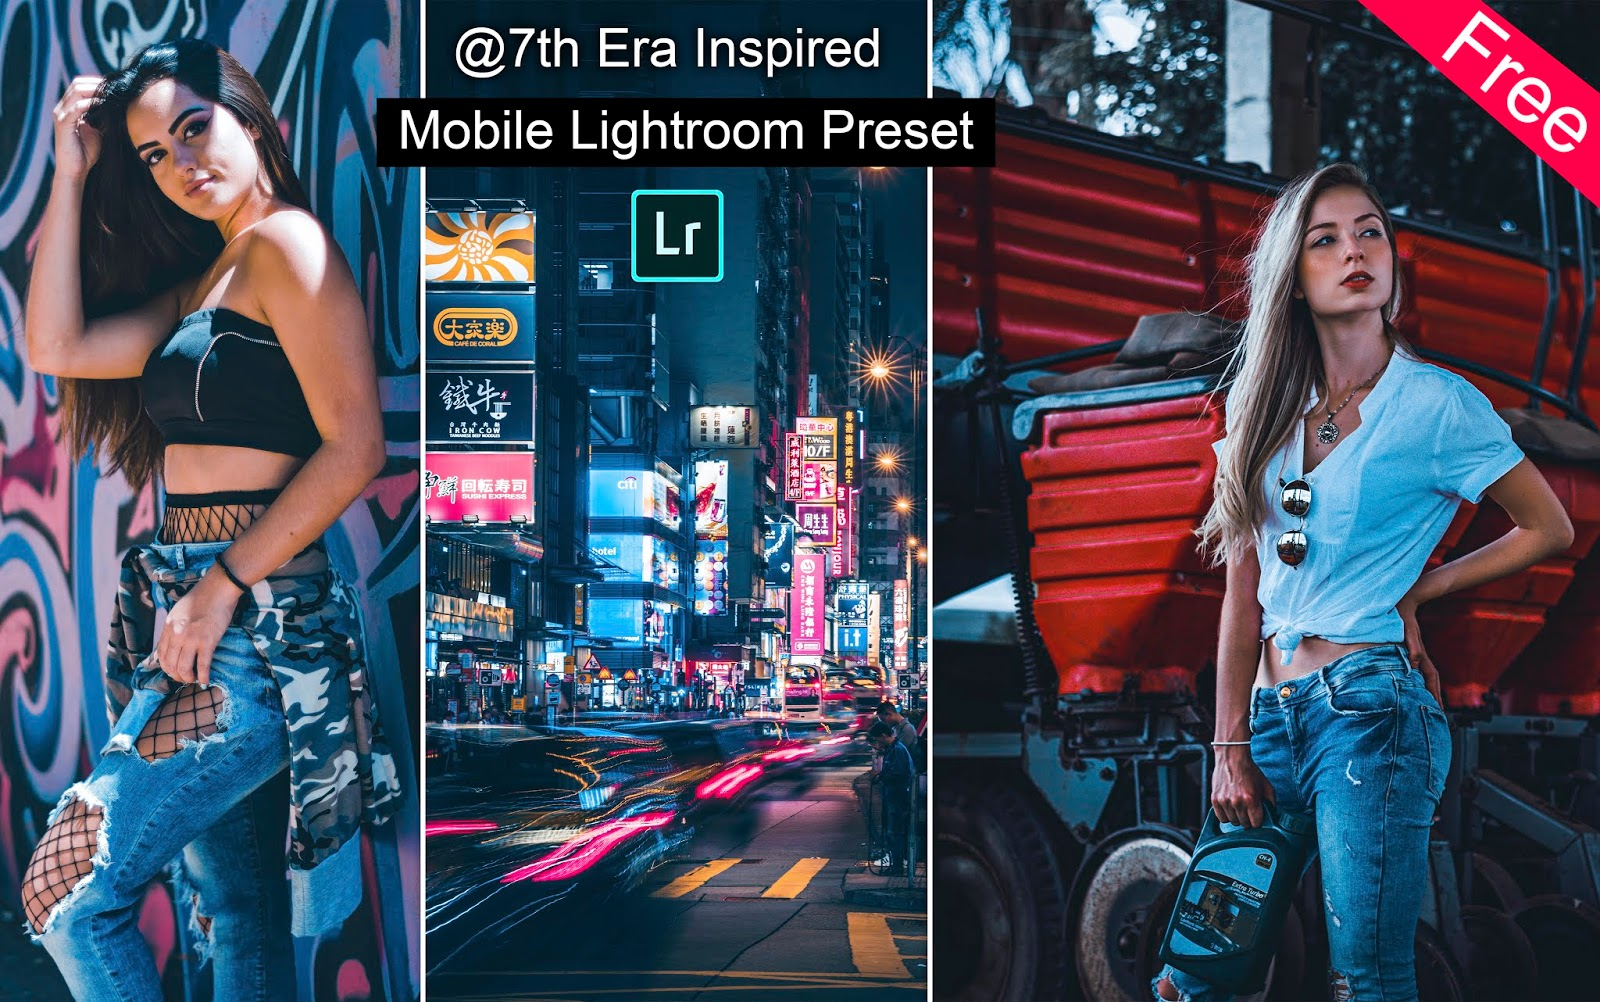 Download 7th Era Inspired Mobile Lightroom Preset for Free | How to Edit Photos Like 7th Era in Mobile Lightroom